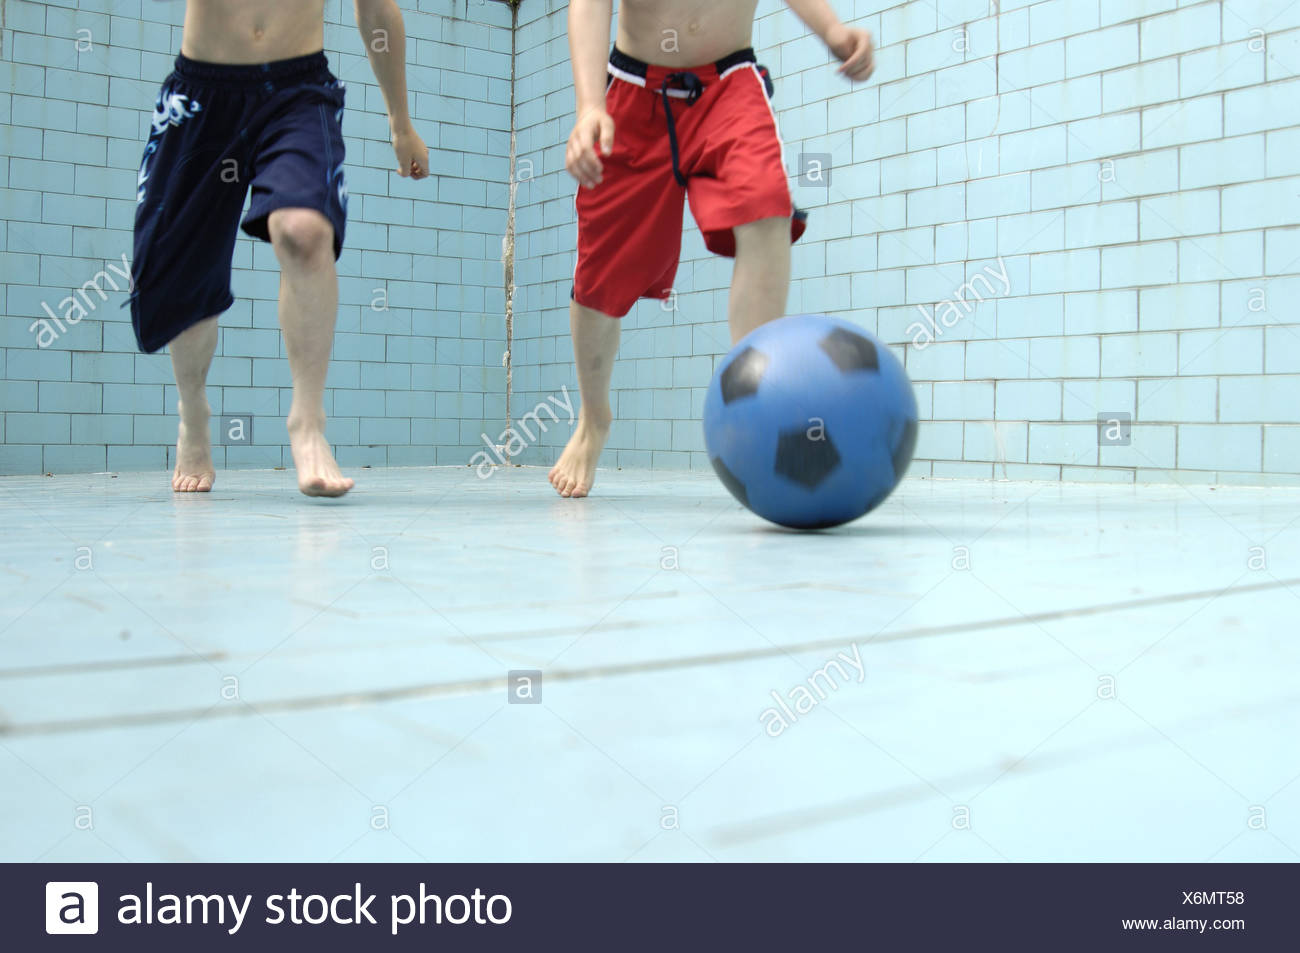 Pool empty children soccer games detail legs series people boys bath-clothing pools basin-ground tiles ball ball-game activity - Stock Image